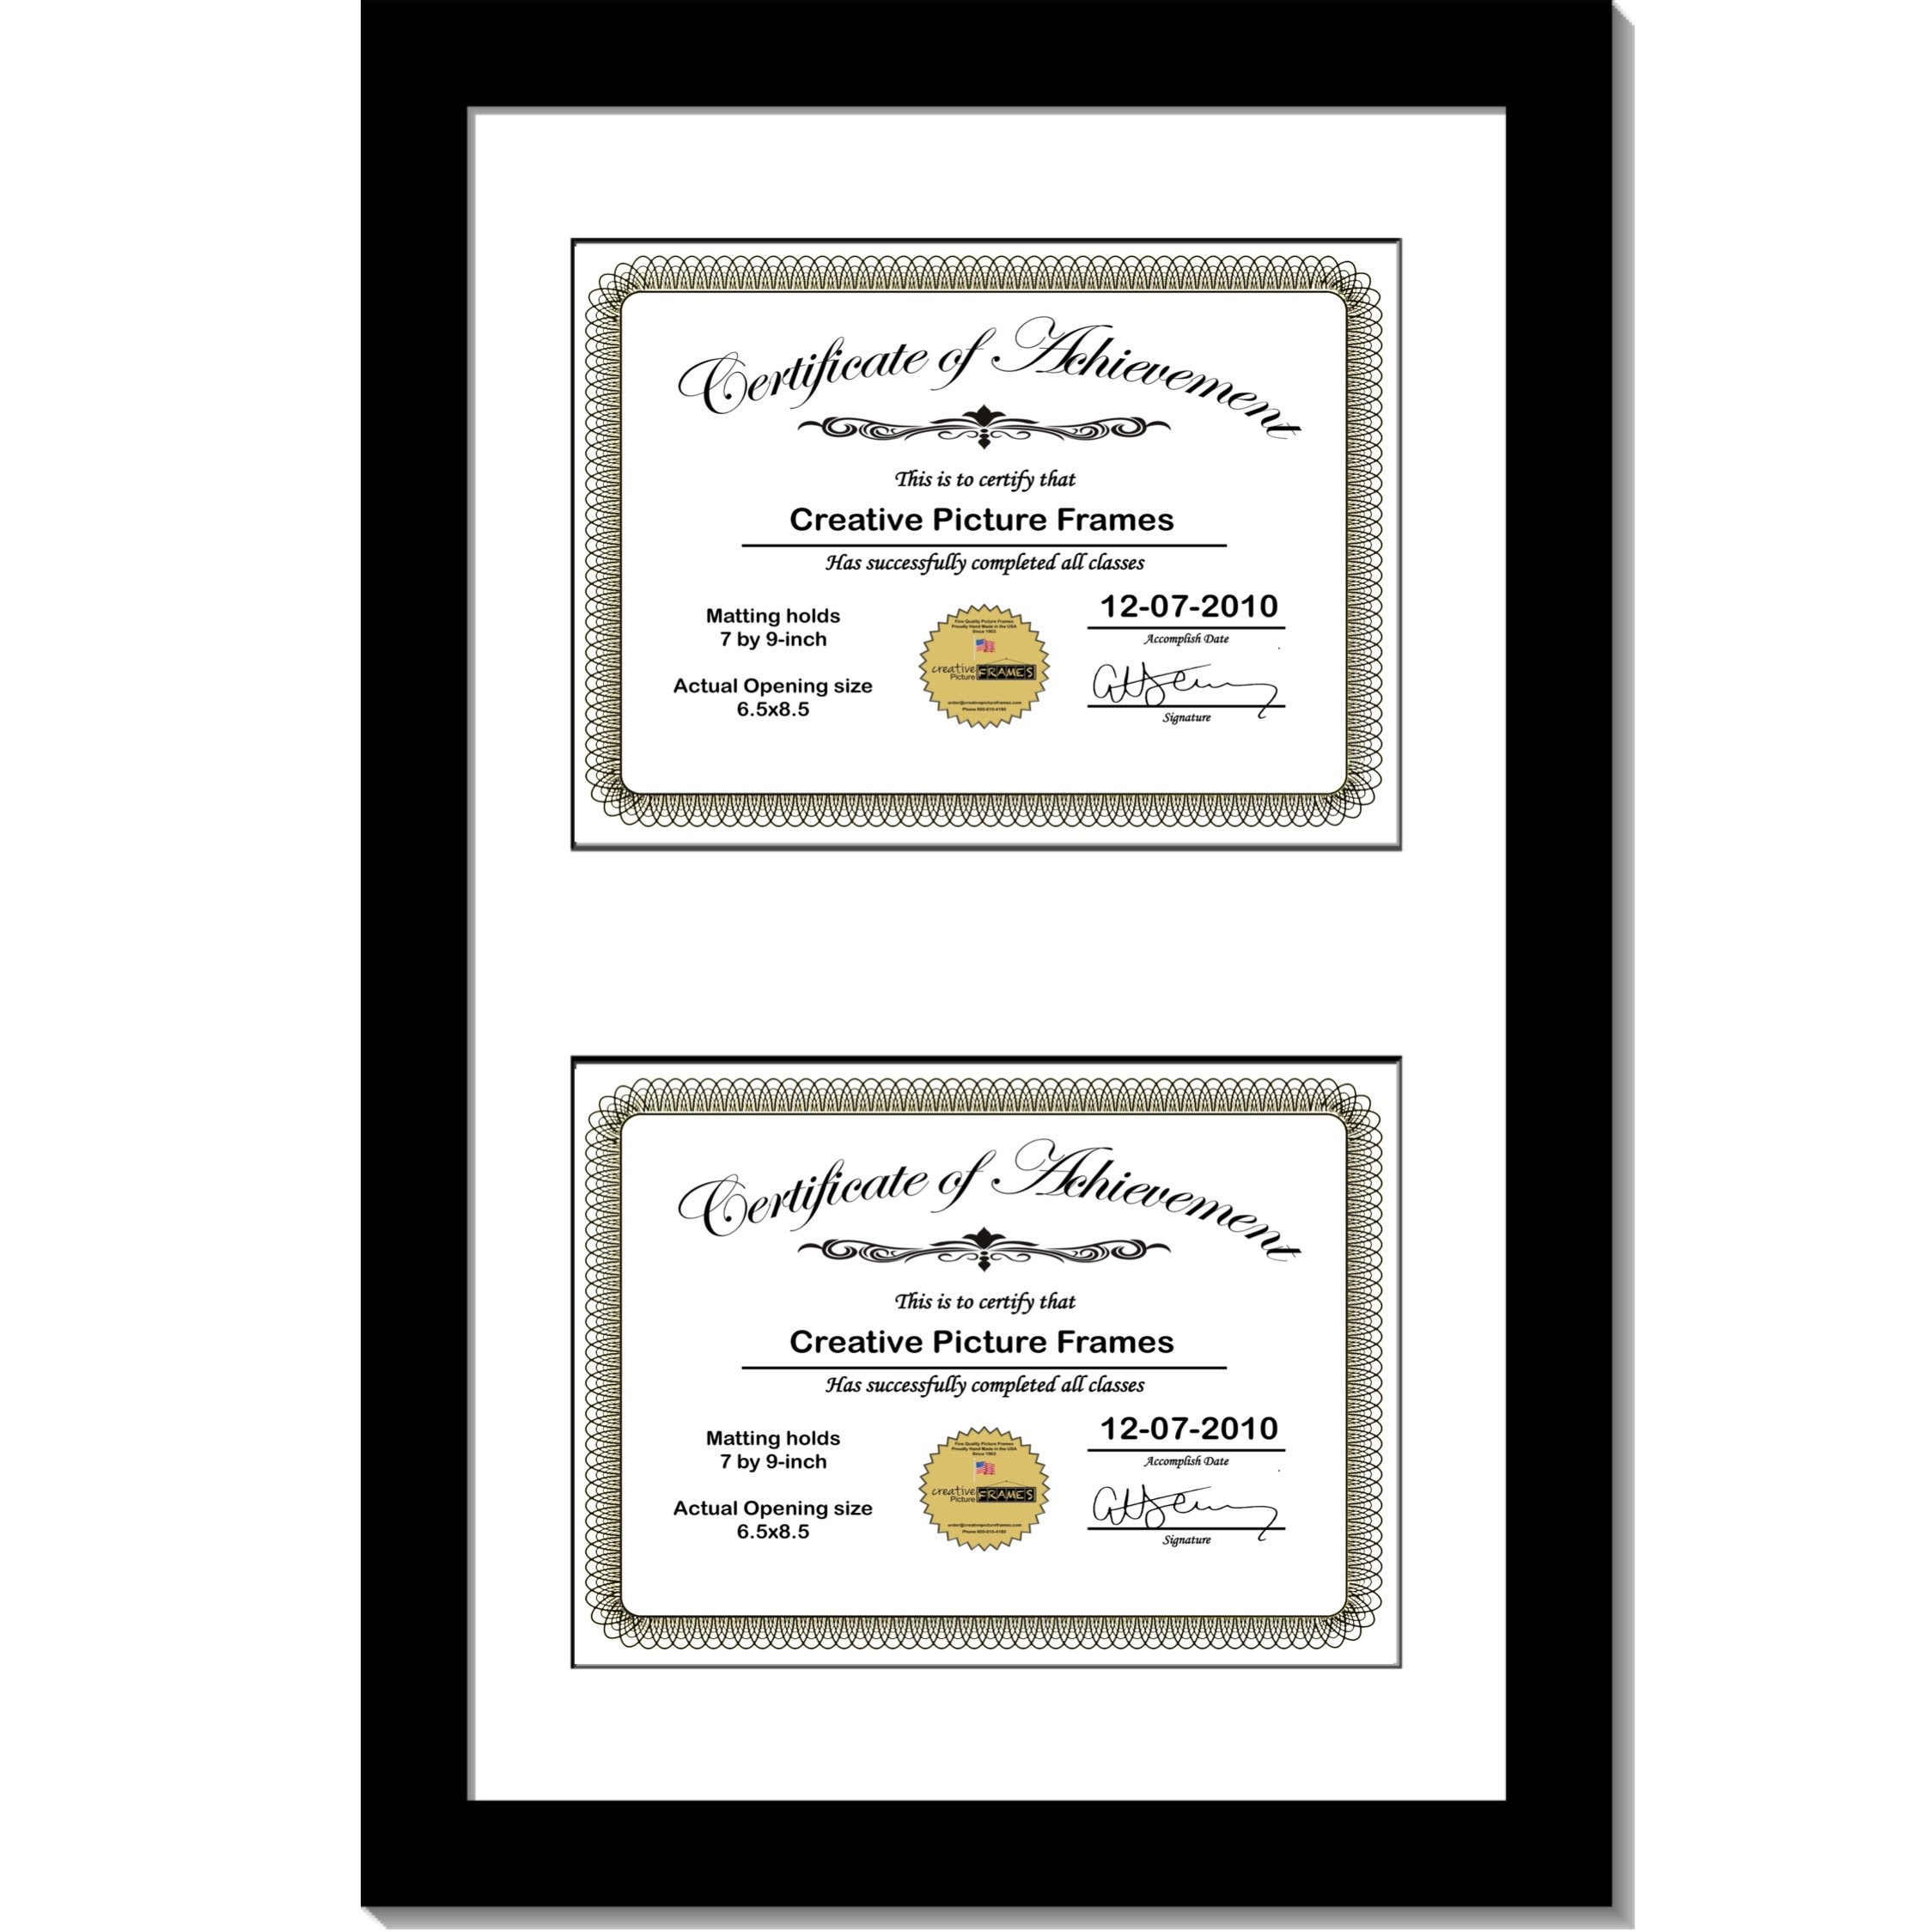 CreativePF [10x16bk-b] Black Vertical Double Diploma Frame with 2 Opening Black Matting | Holds 2-7x9-inch Documents with Installed Wall Hanger